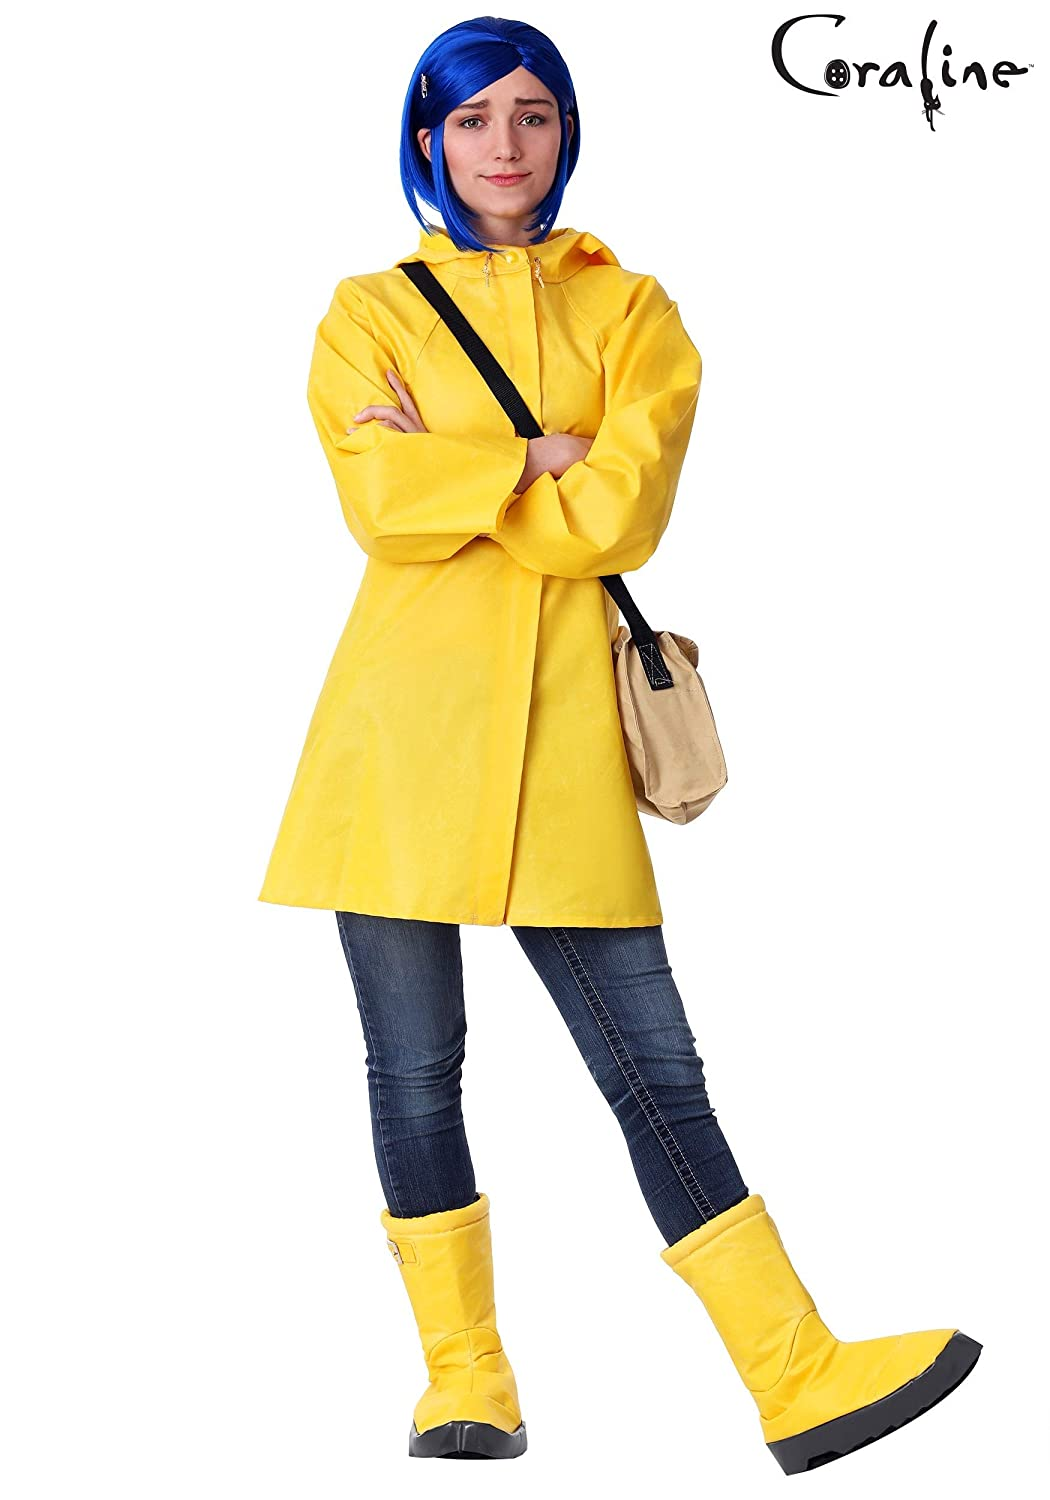 a71d027dc13 Amazon.com: Bayi Co. Adult Coraline Costume Yellow: Clothing